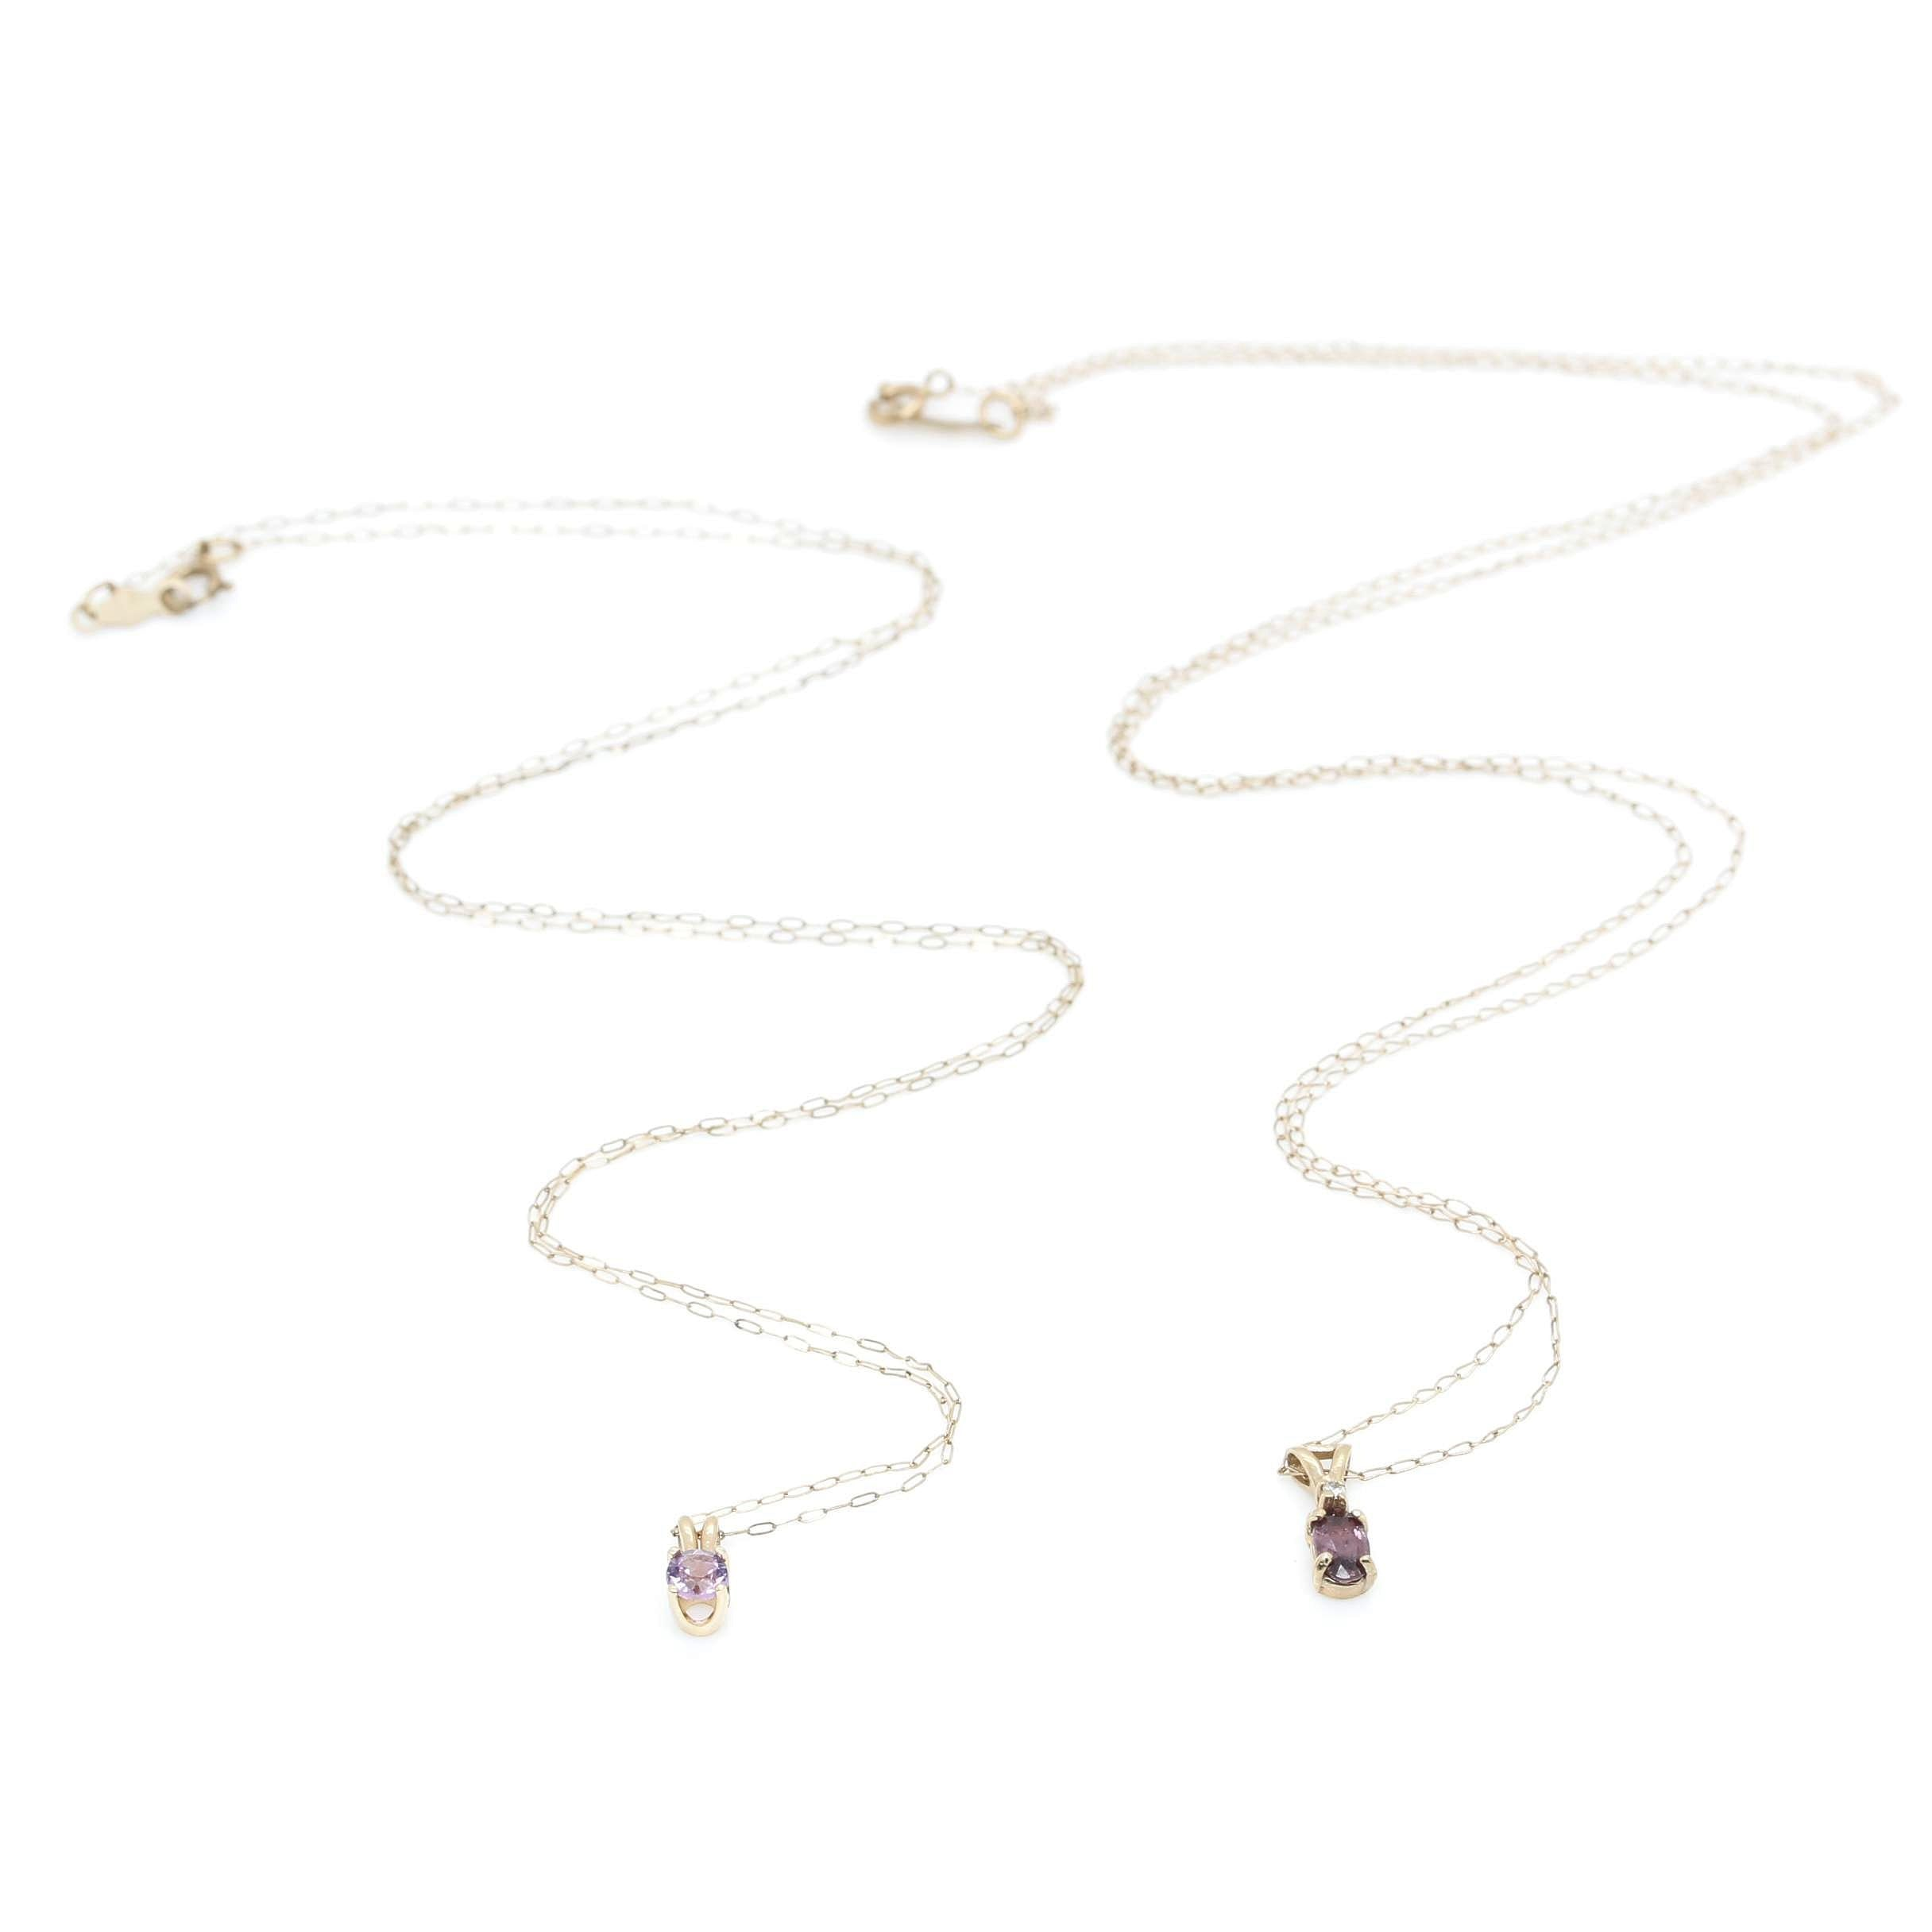 10K and 14K Yellow Gold Amethyst, Ruby and Diamond Necklaces